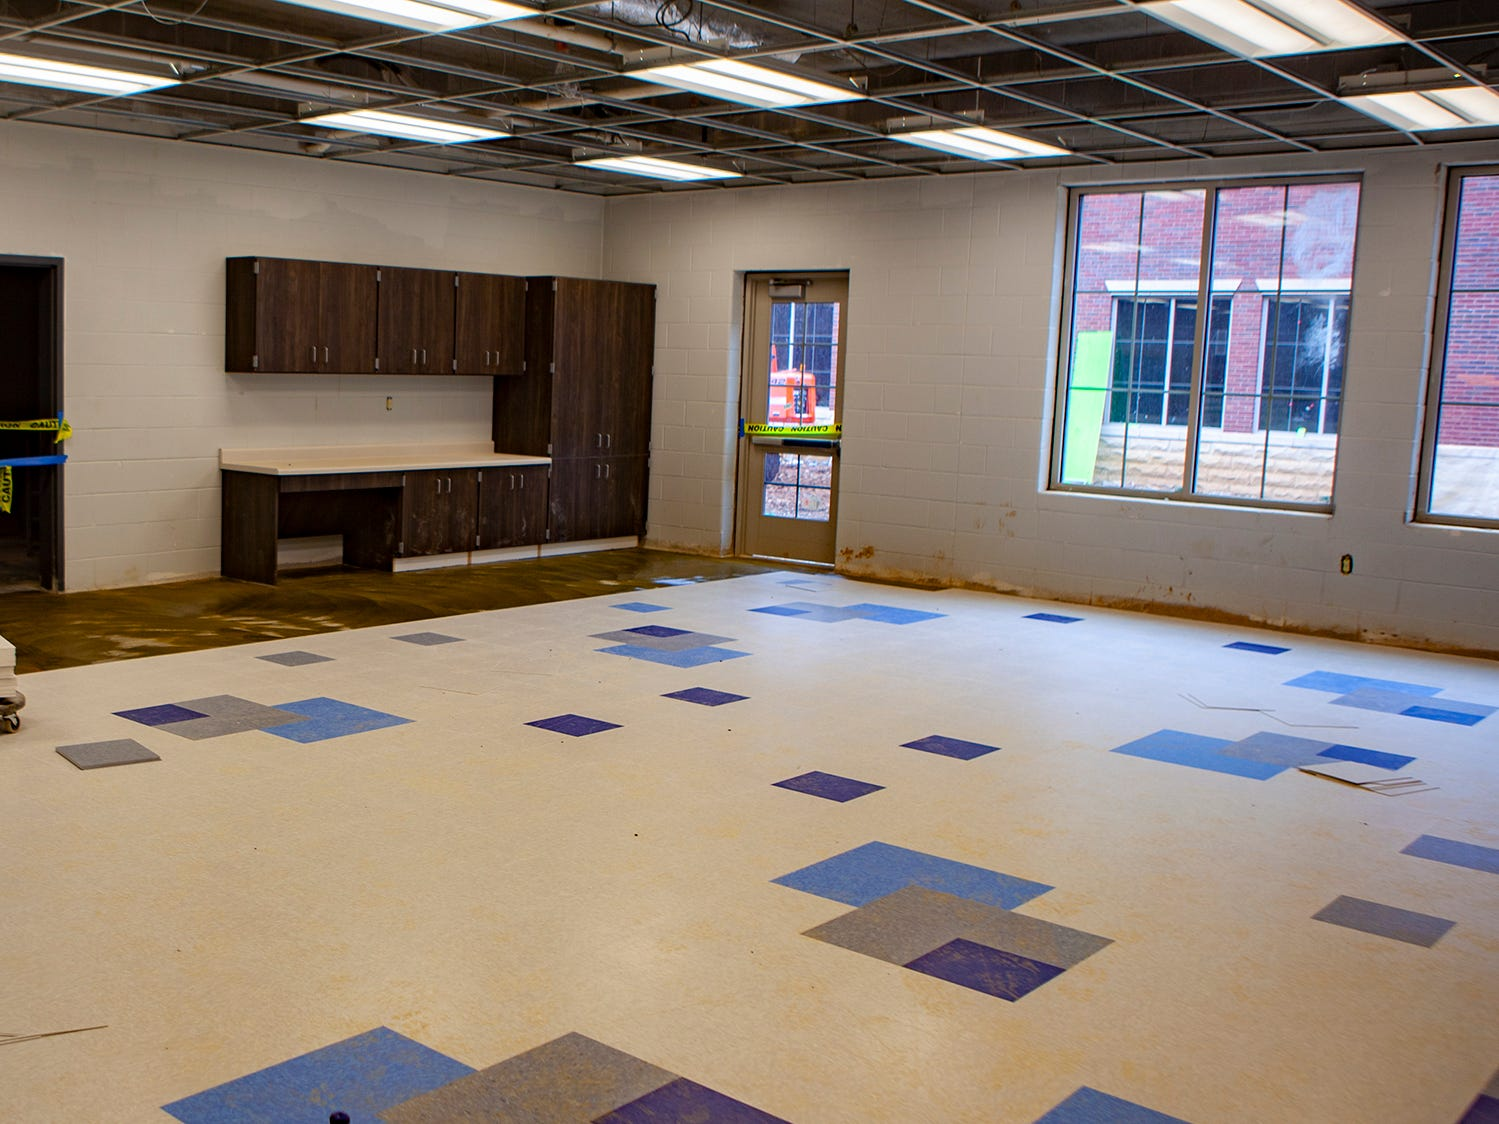 This classroom will be used as the art room at Salem Elementary, set to open in July. It will be the 13th school in the Murfreesboro City Schools district.